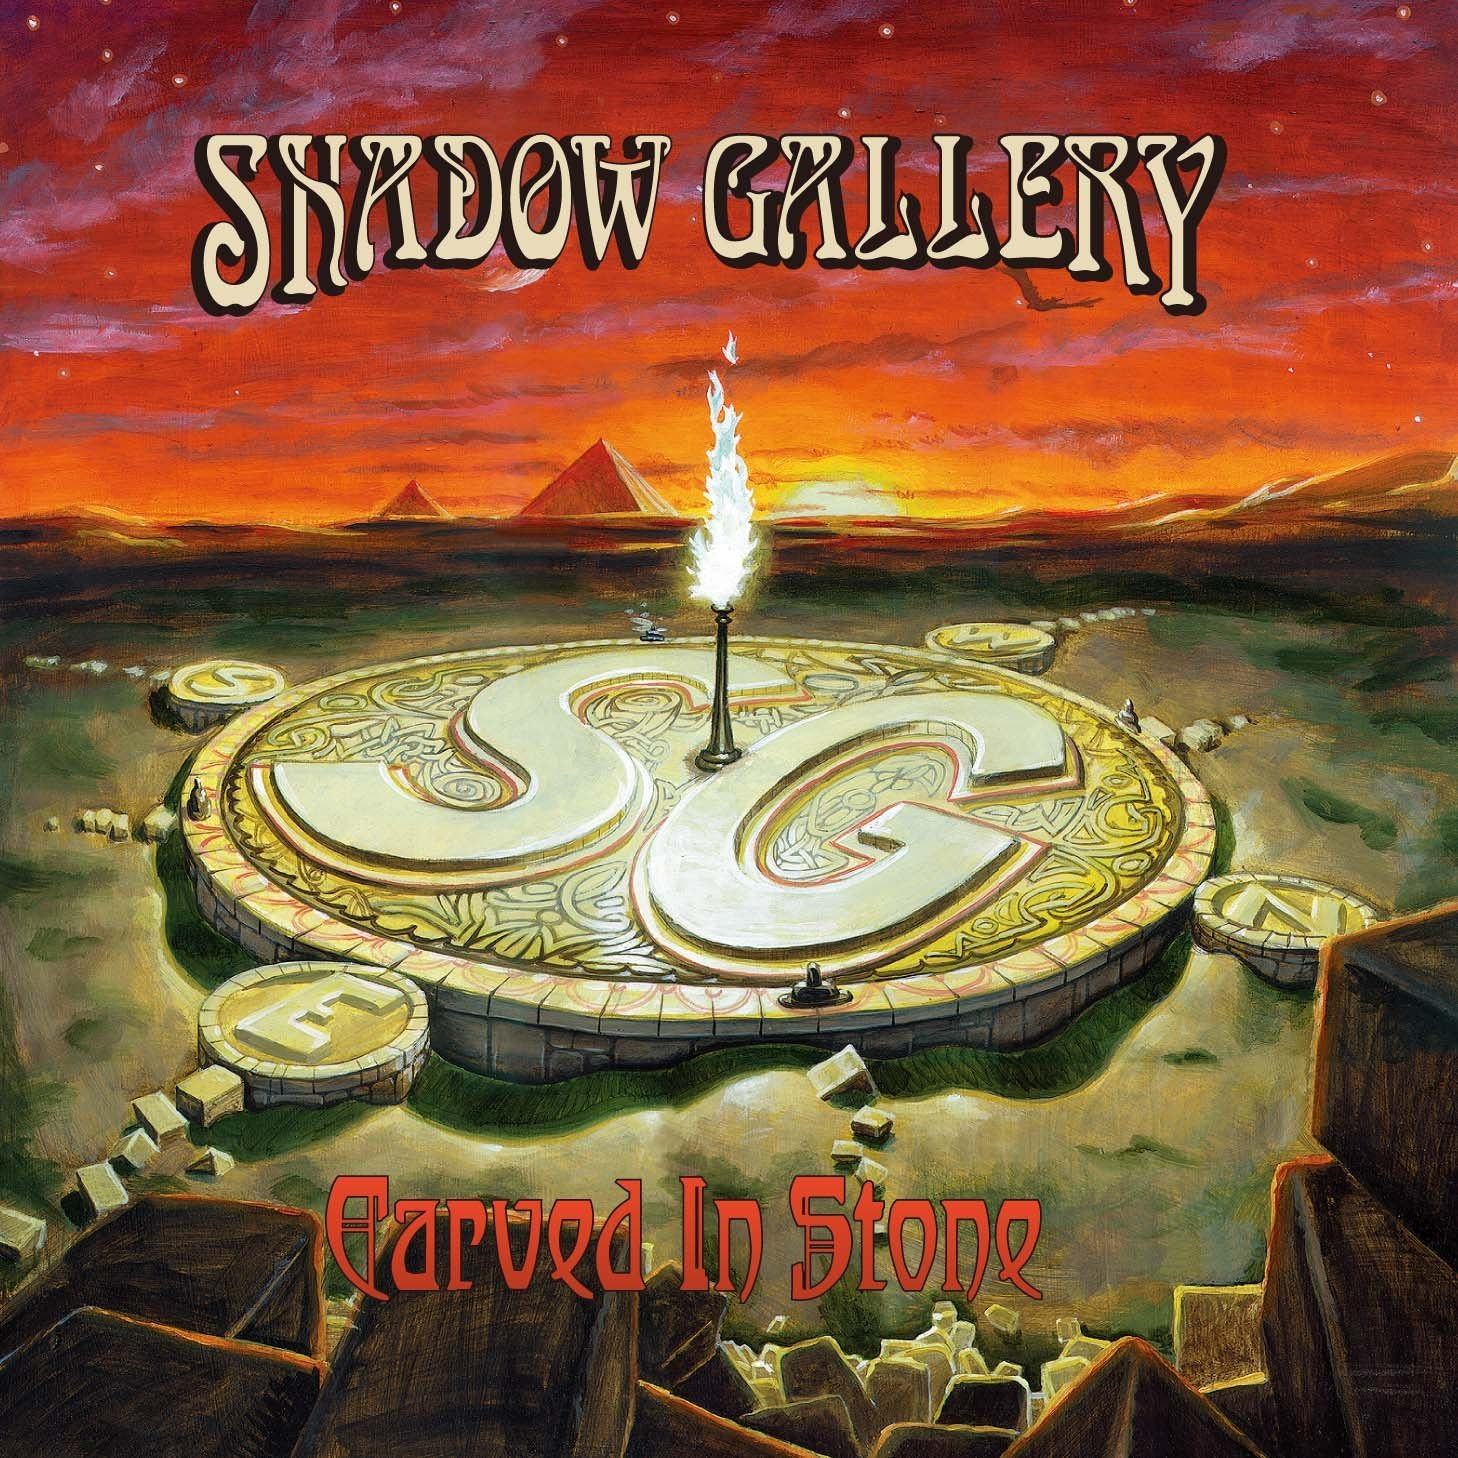 SHADOW GALLERY - Carved In Stone cover